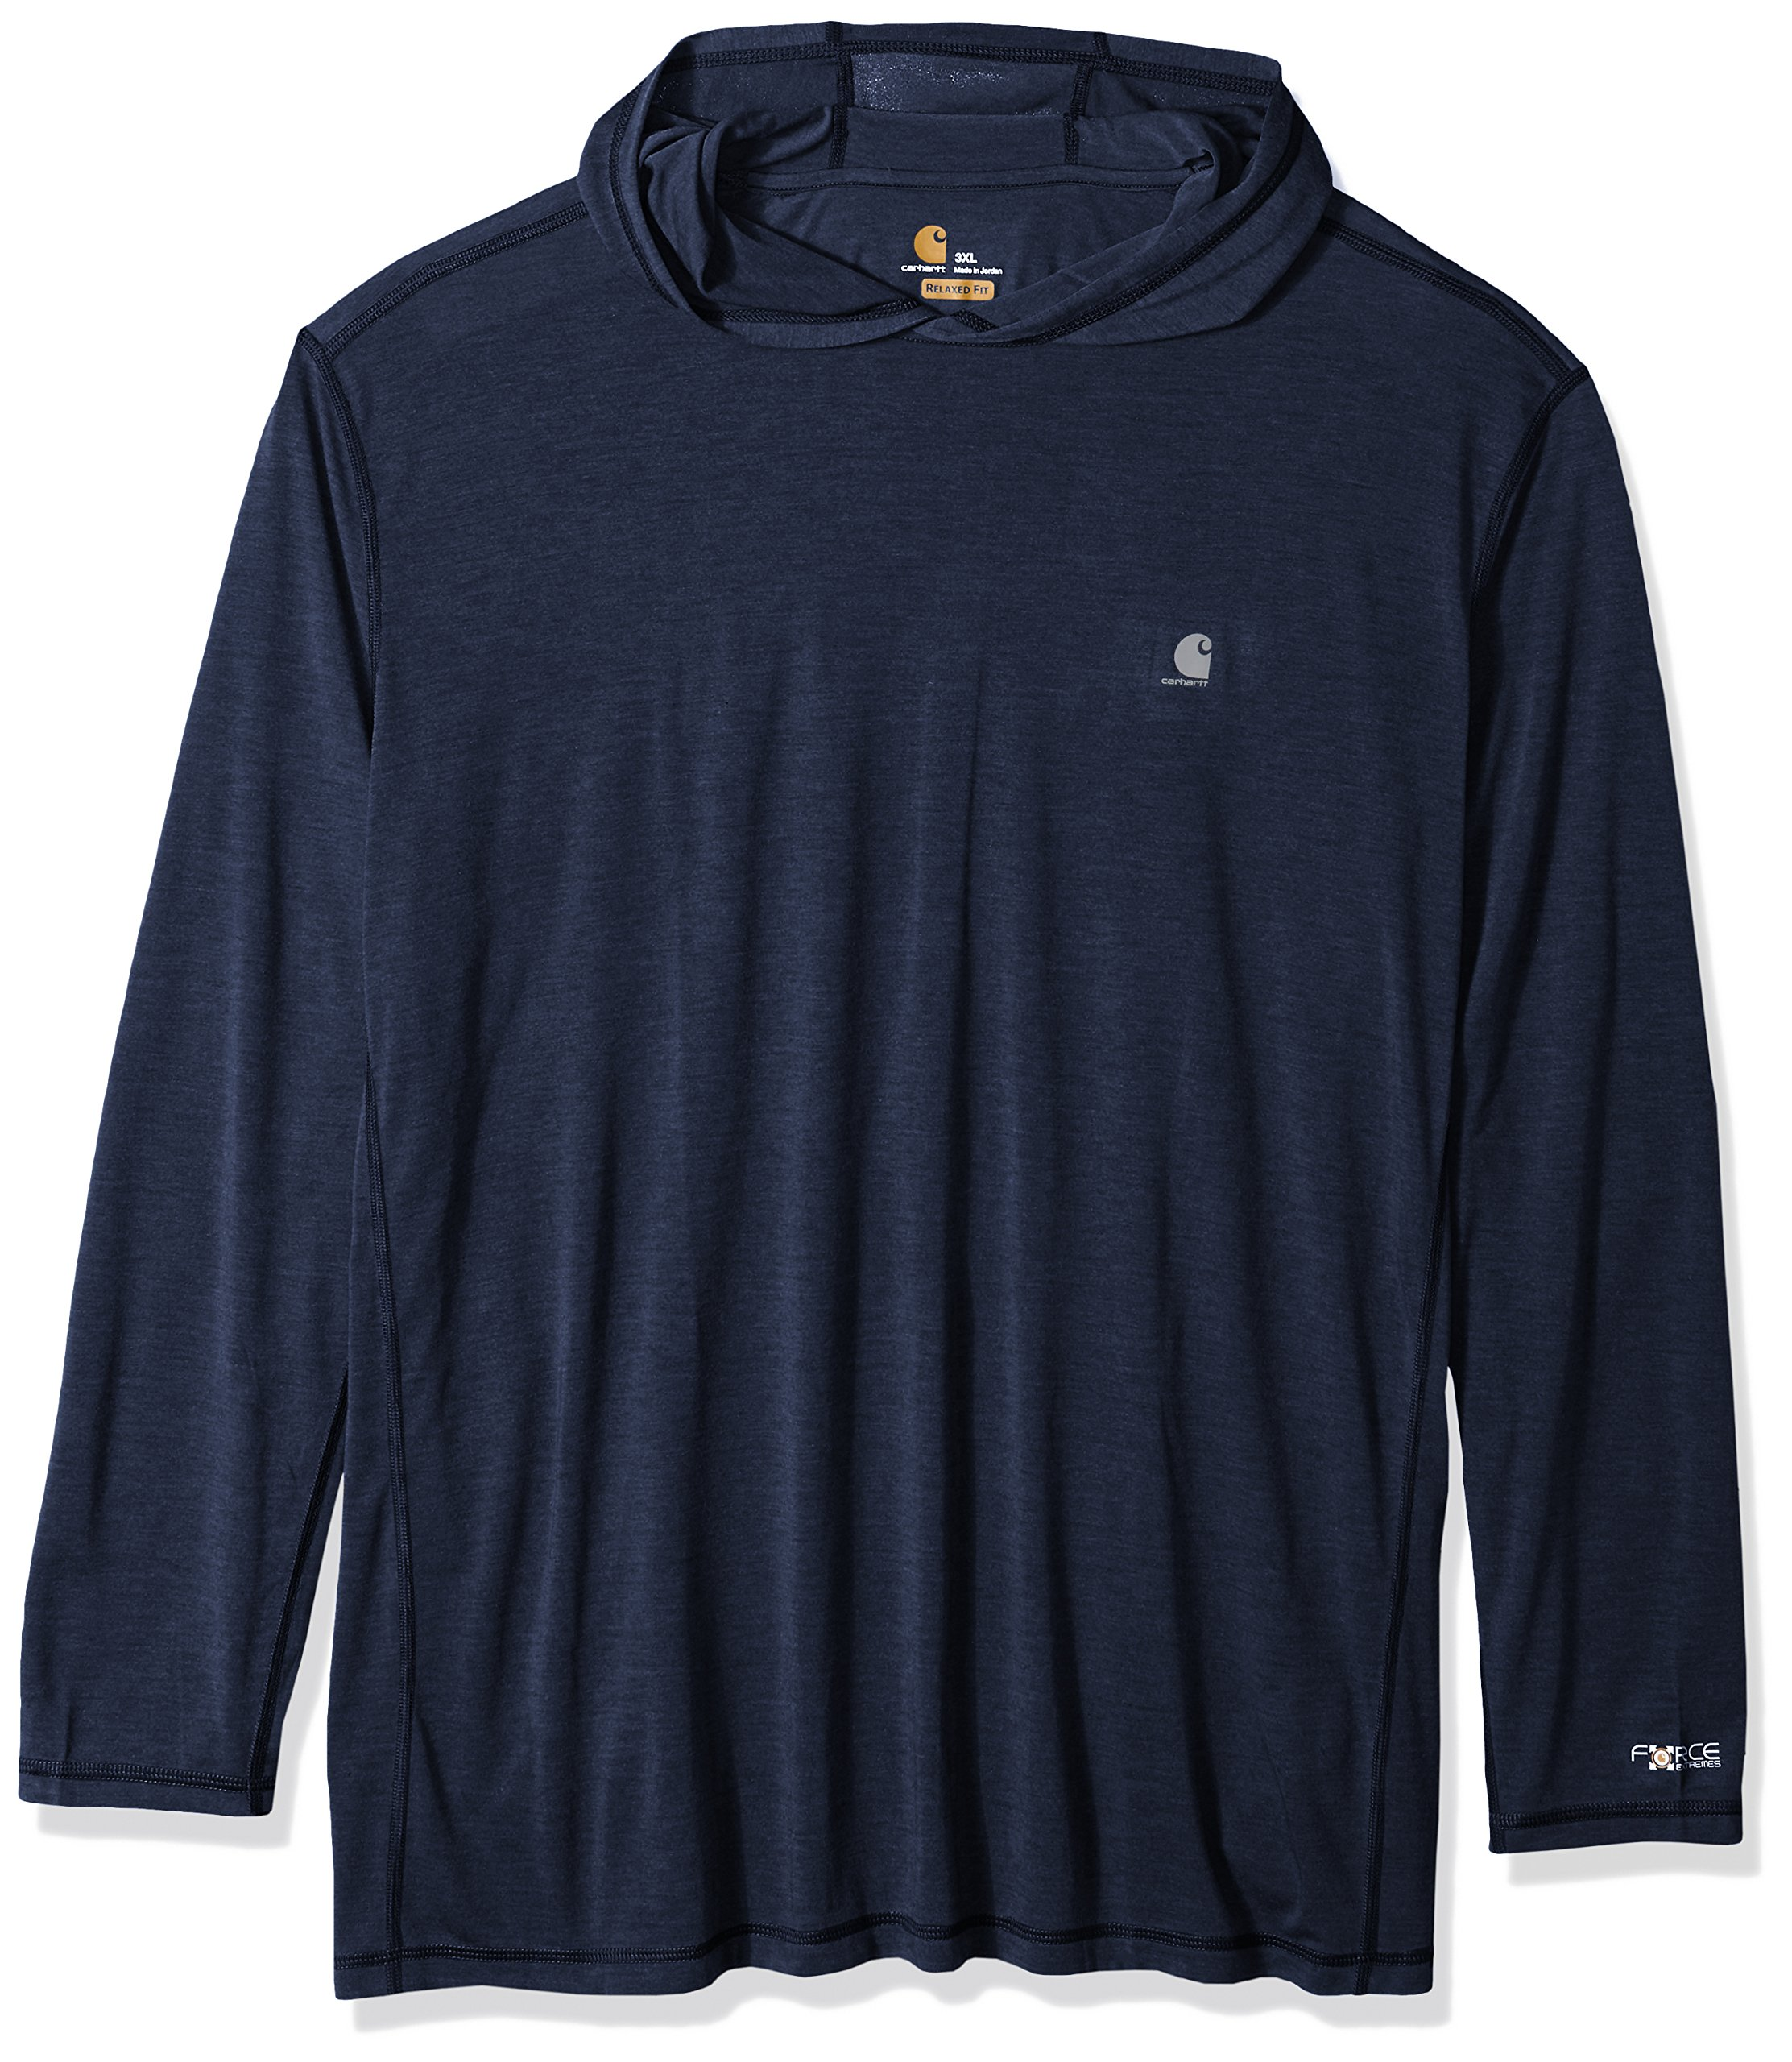 Carhartt Men's Force Extremes Hooded Pullover (Regular and Big & Tall Sizes), Navy Heather, 4X-Large